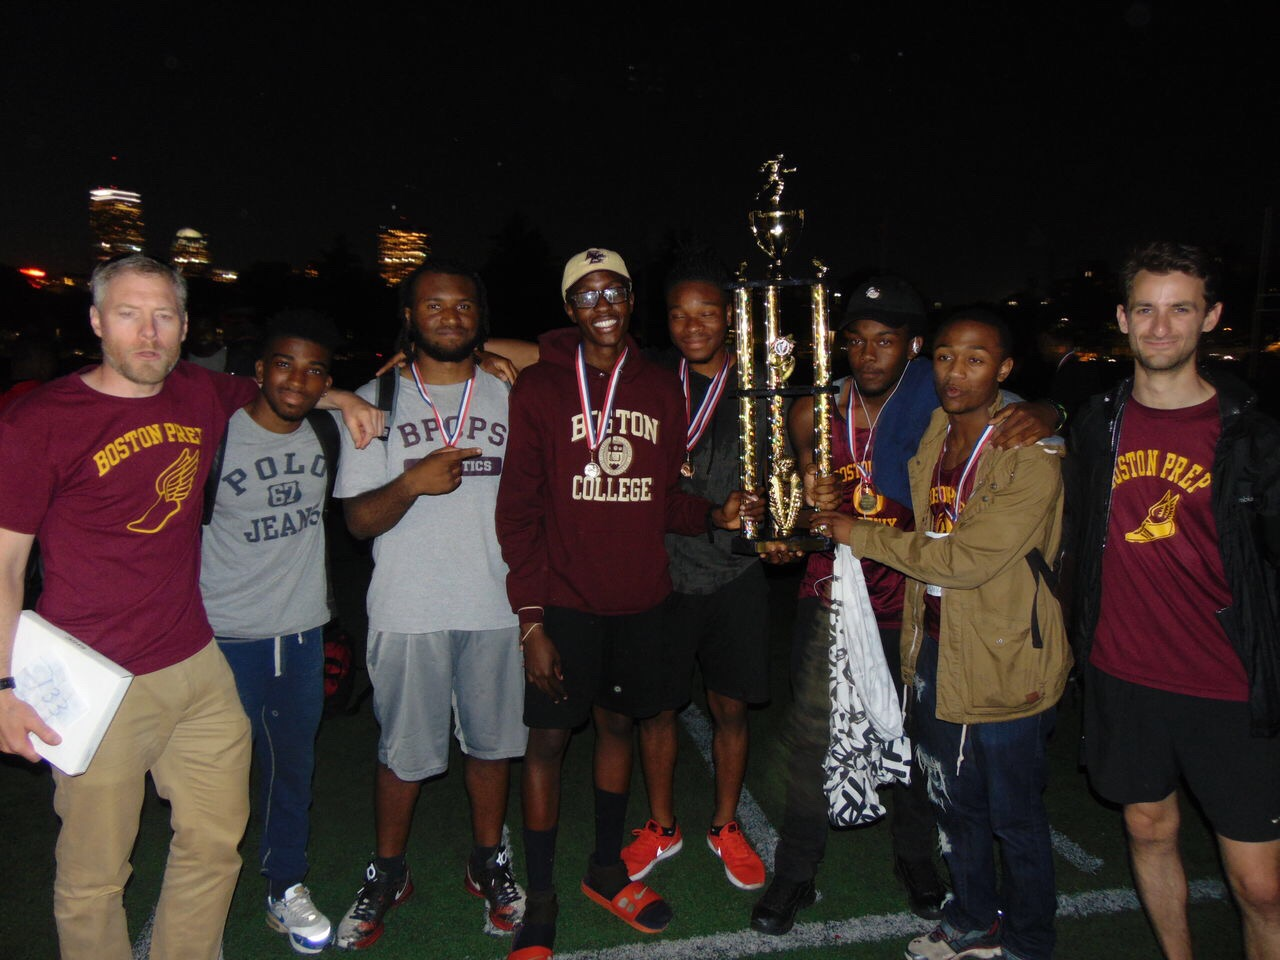 The boys track team brought home the championship title yet again, for the third time in four years.